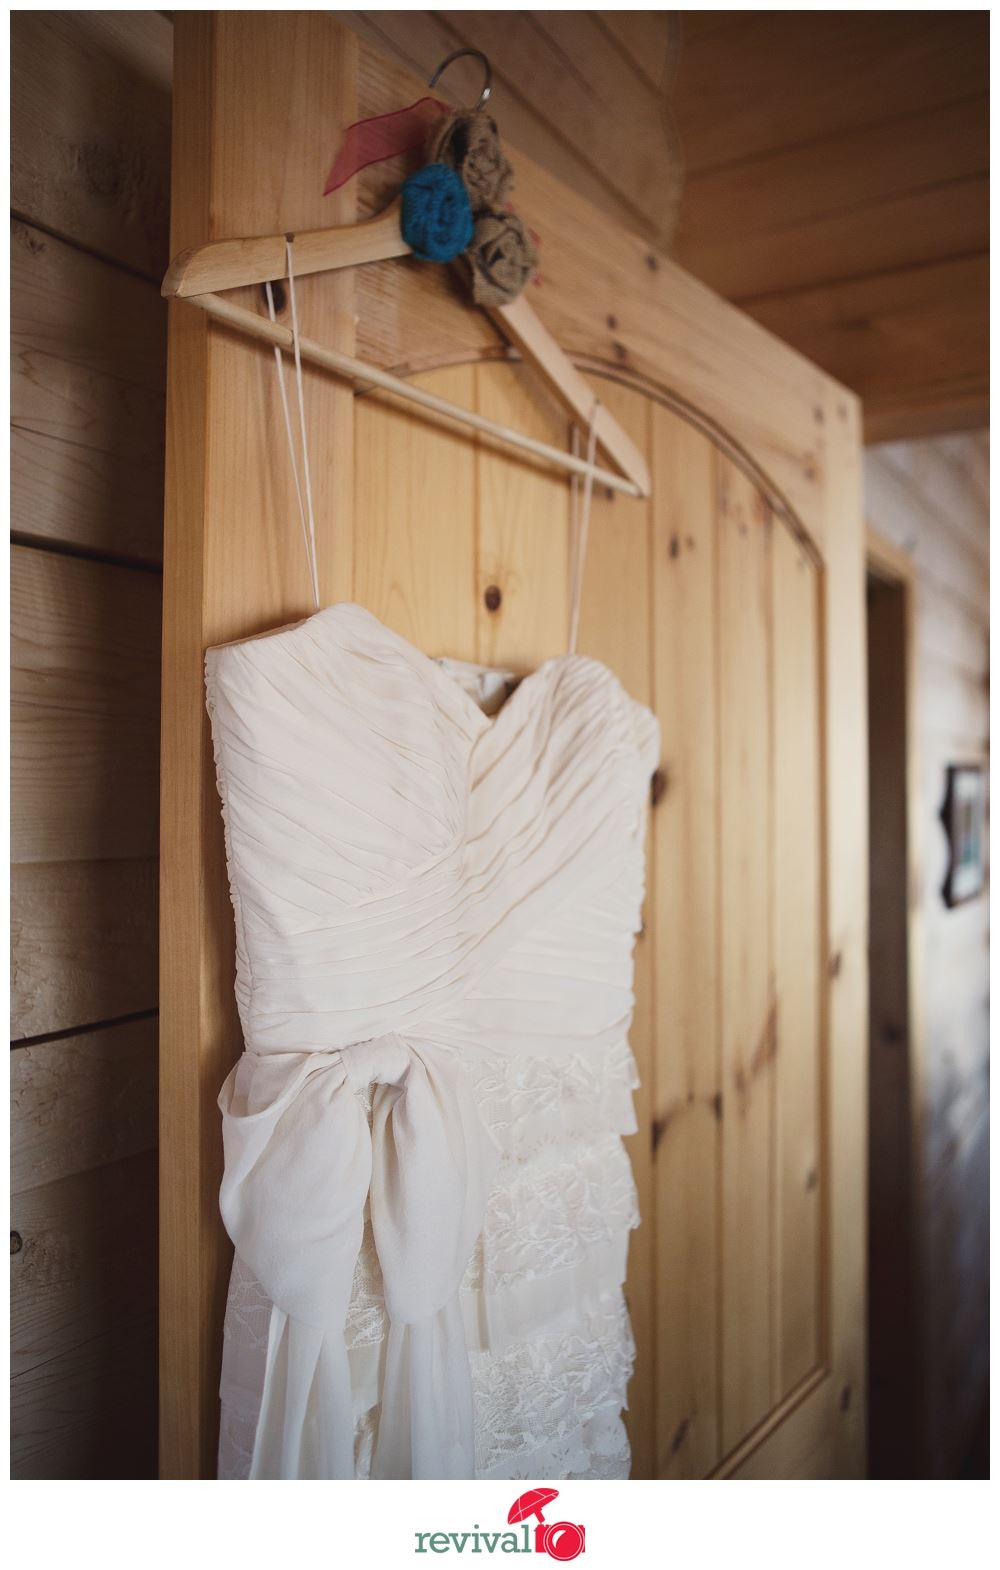 Personalized Wedding Dress Hanger Rustic Chic Photos by Revival Photography